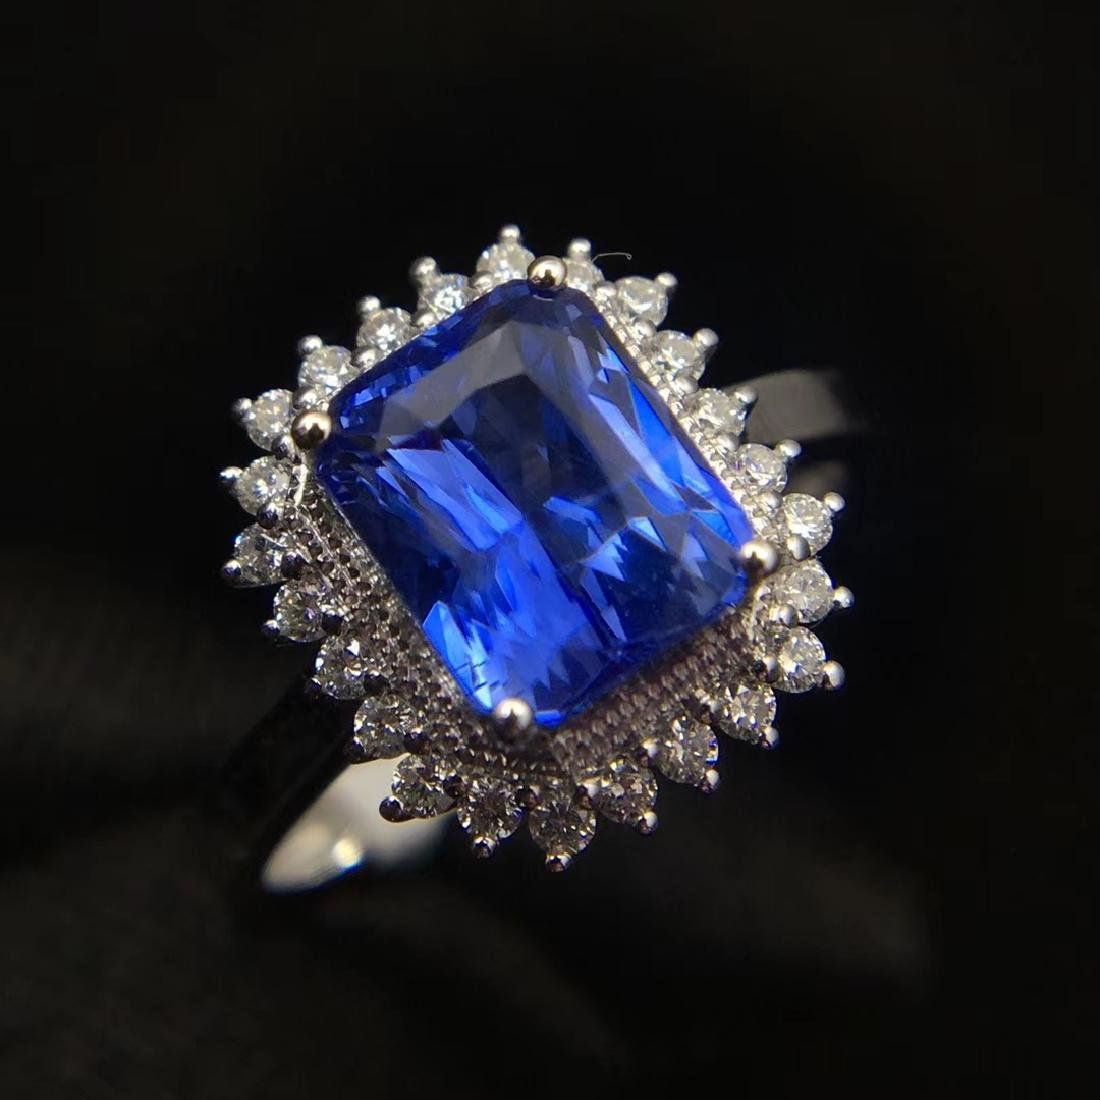 2.52ct Sapphire Ring in 18kt White Gold - 2